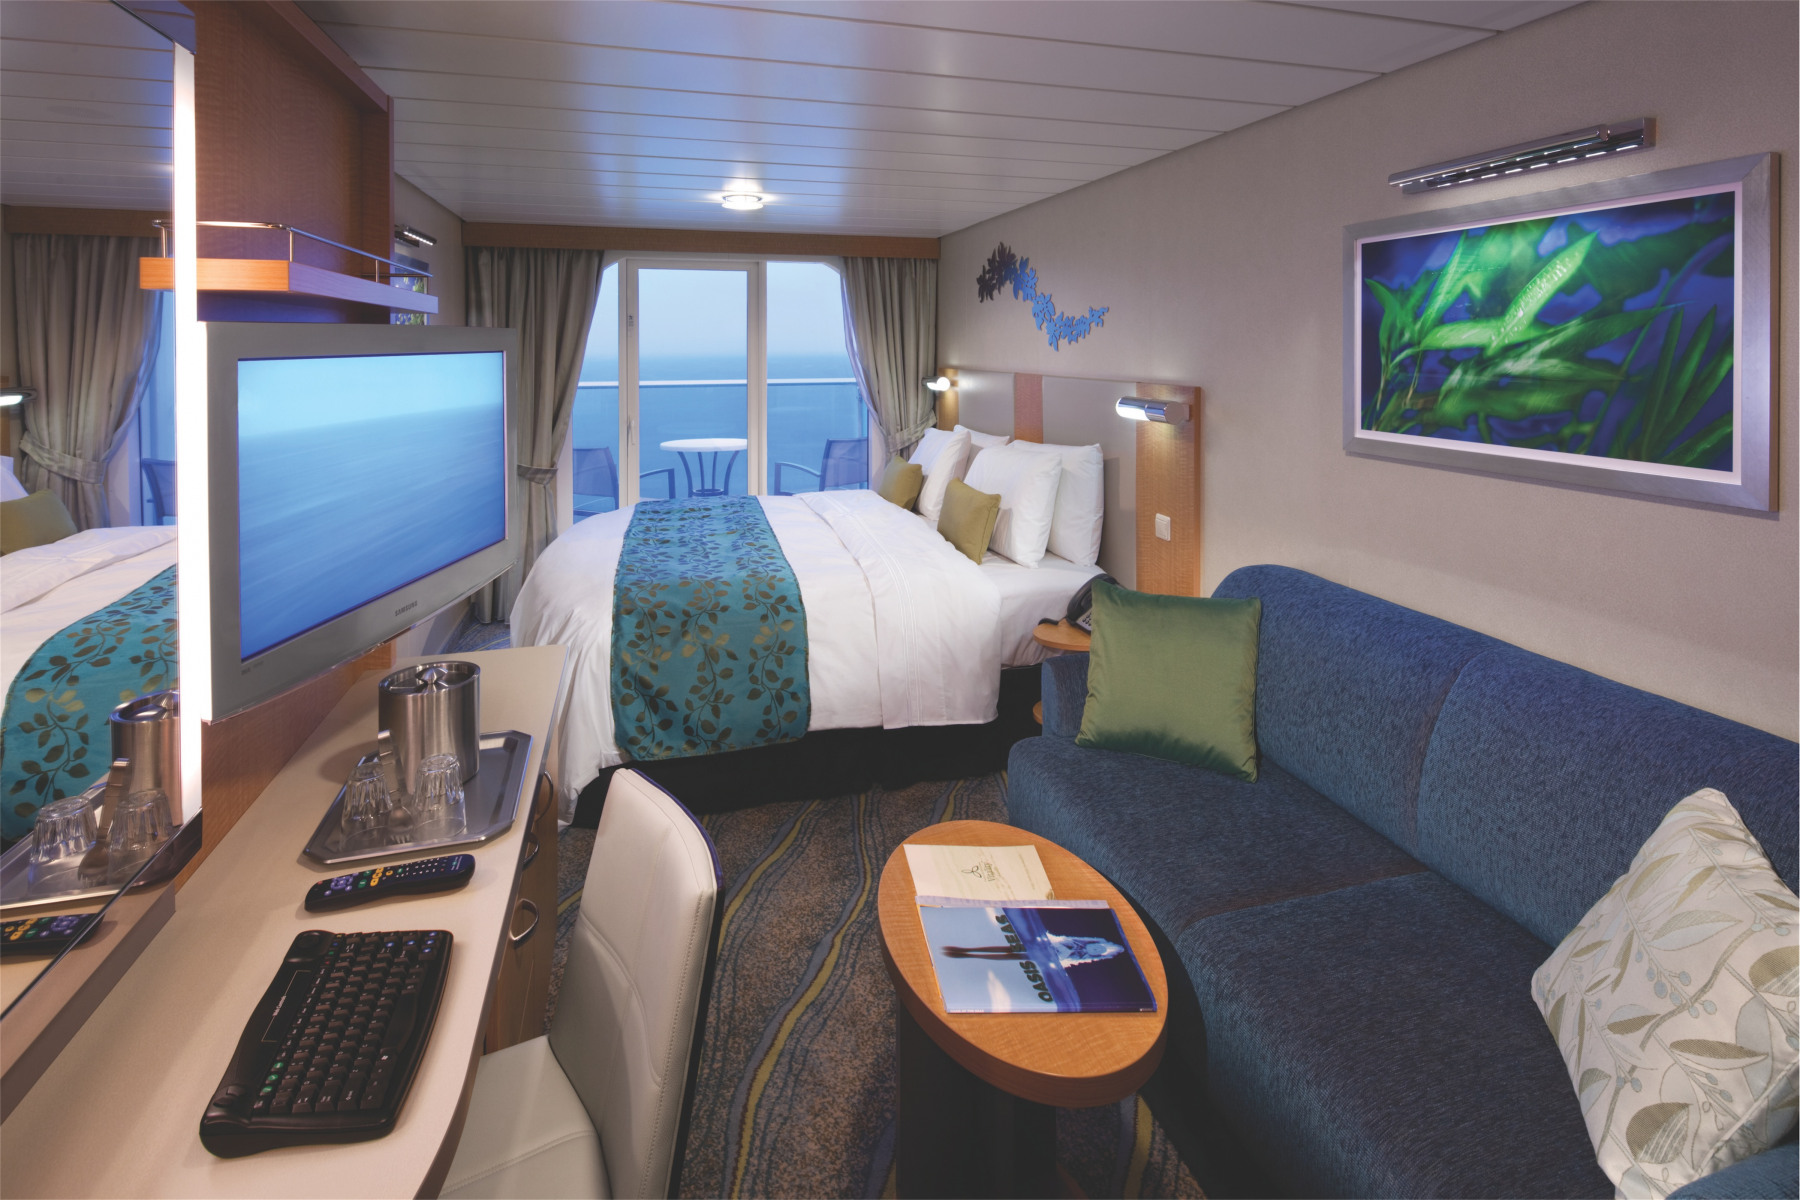 Royal Caribbean International Oasis of the  Seas Accommodation Stateroom Superior Ocean View.jpg